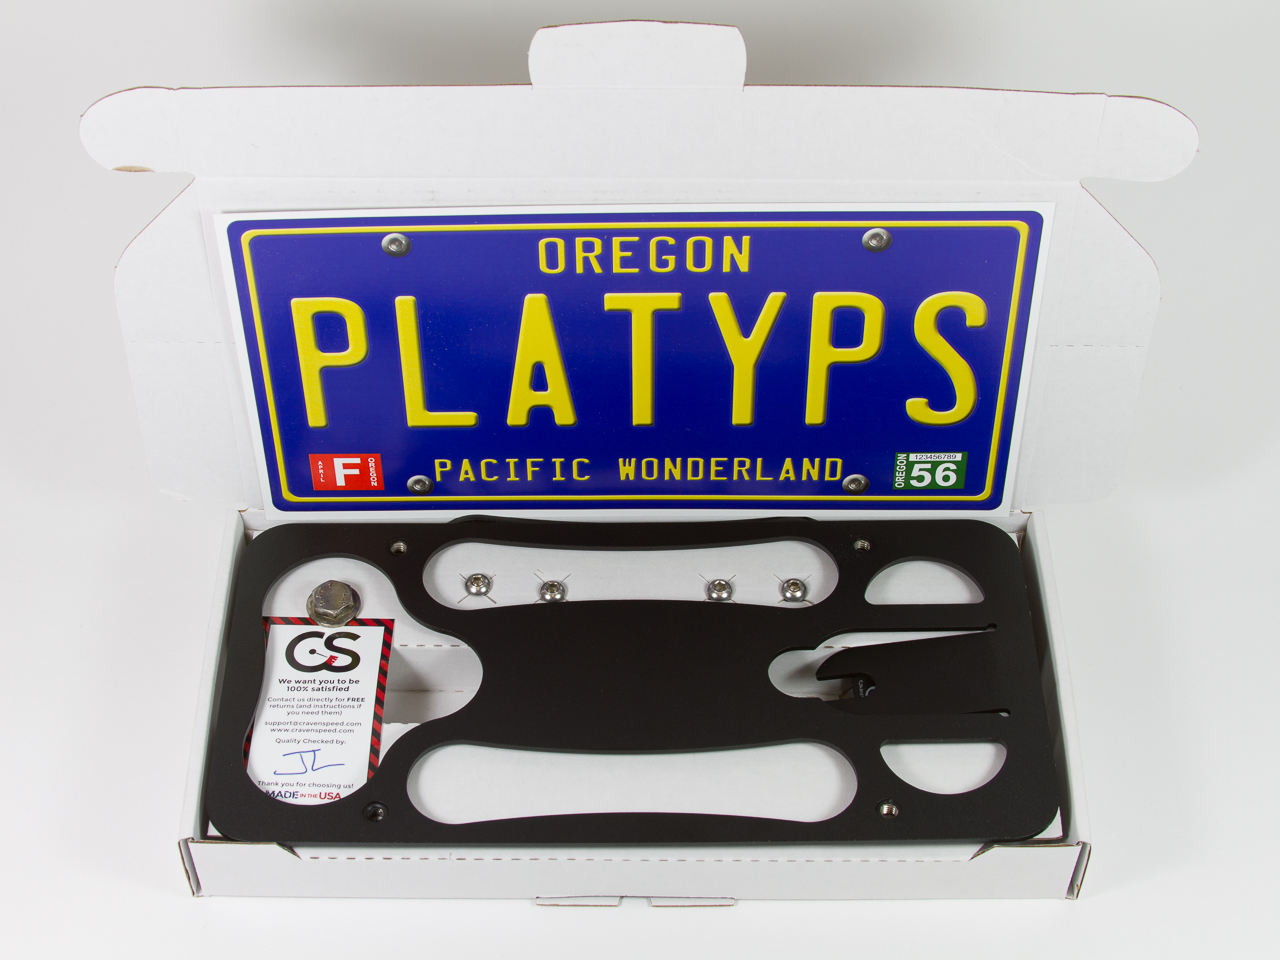 Assembled kit of The Platypus License Plate Mount for 2013-2015 Ford Escape